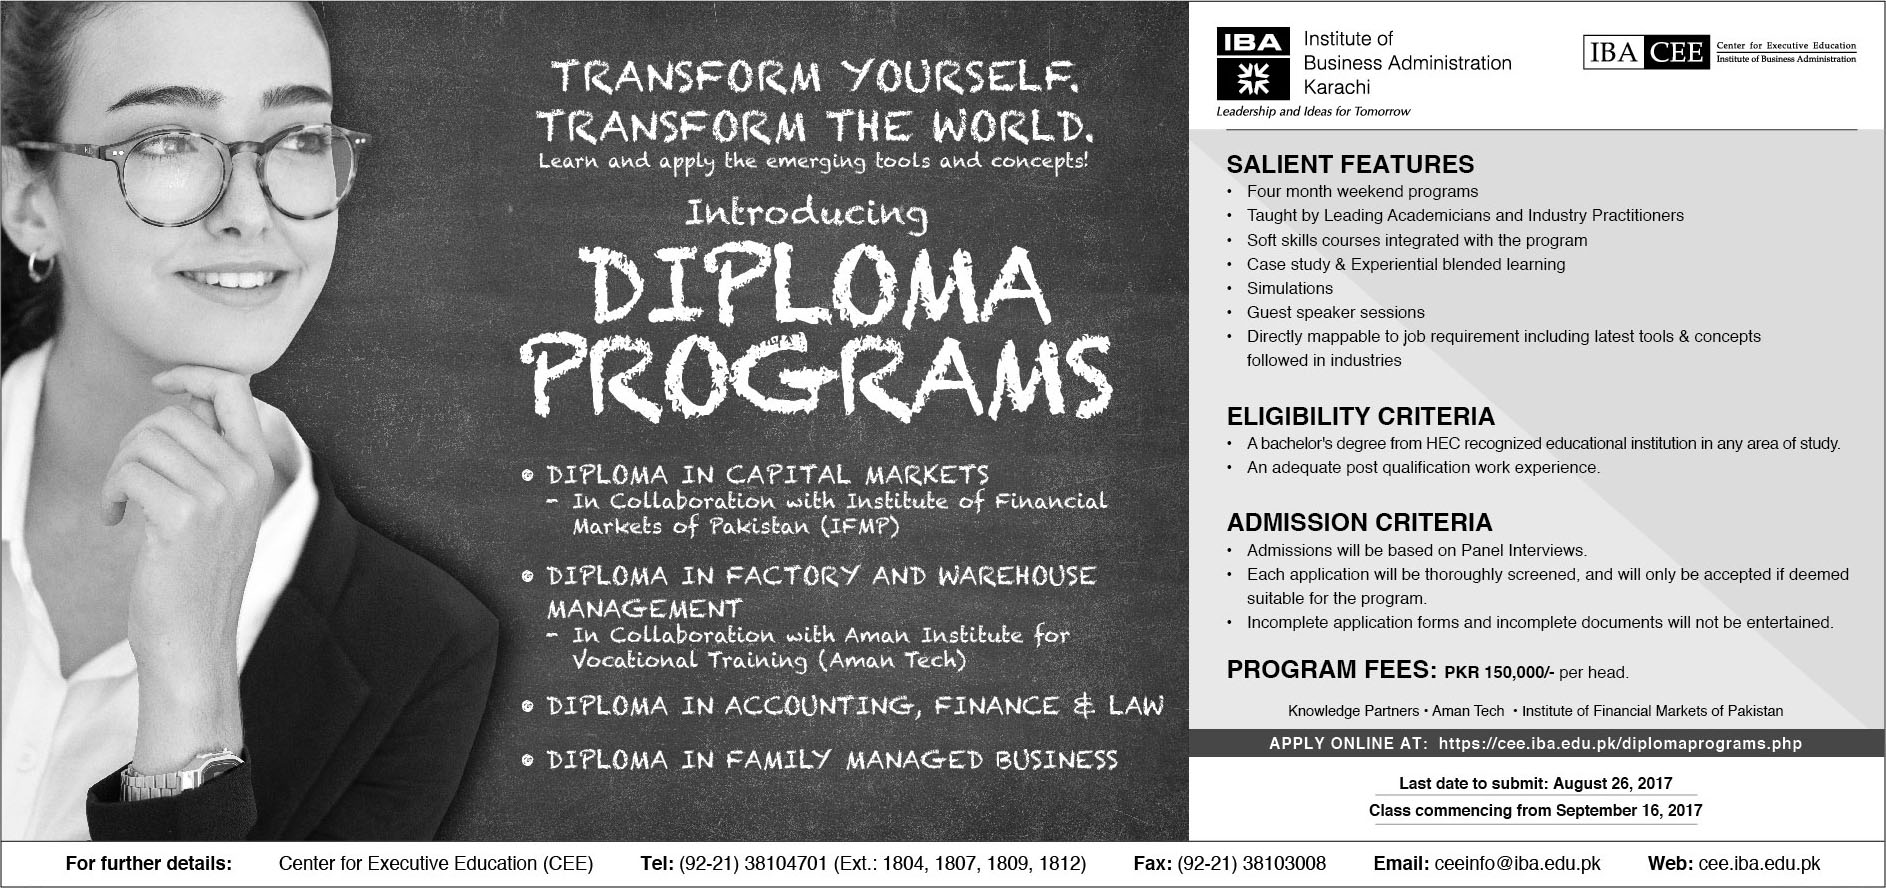 Introducing Diploma Programs